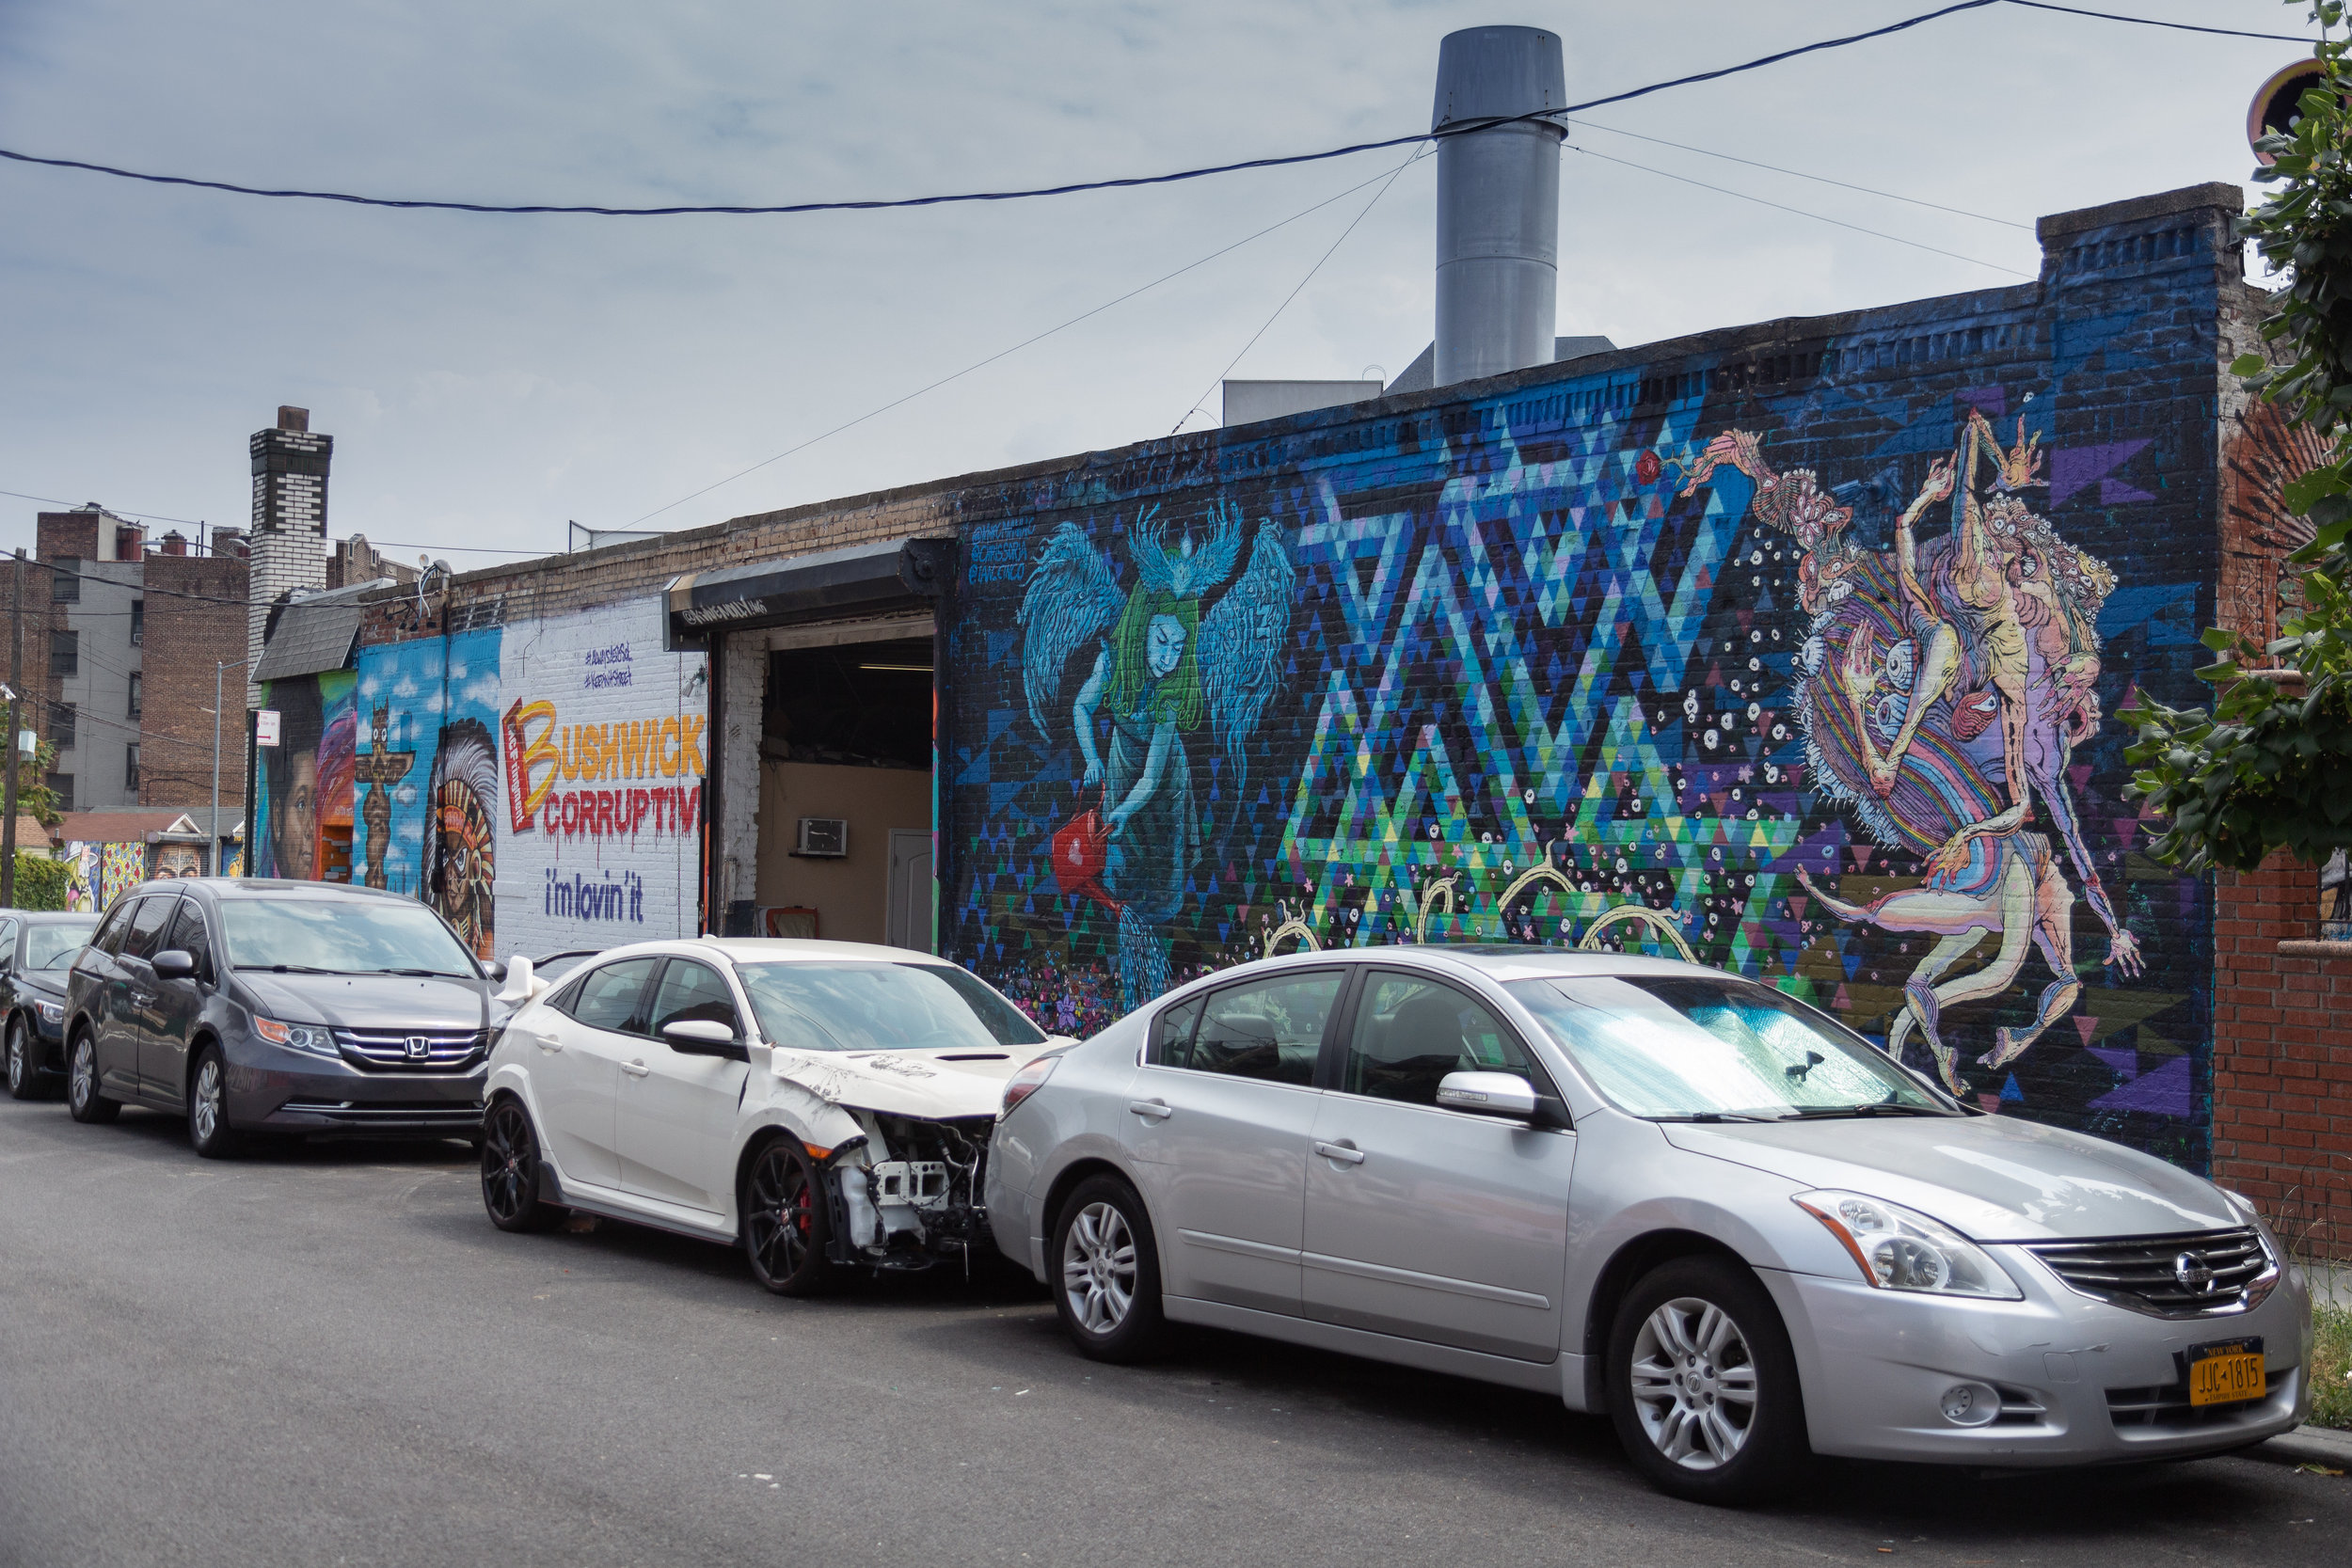 The Welling Court Mural Project shares its space with an auto body shop and several private homes on a sleepy Astoria street.